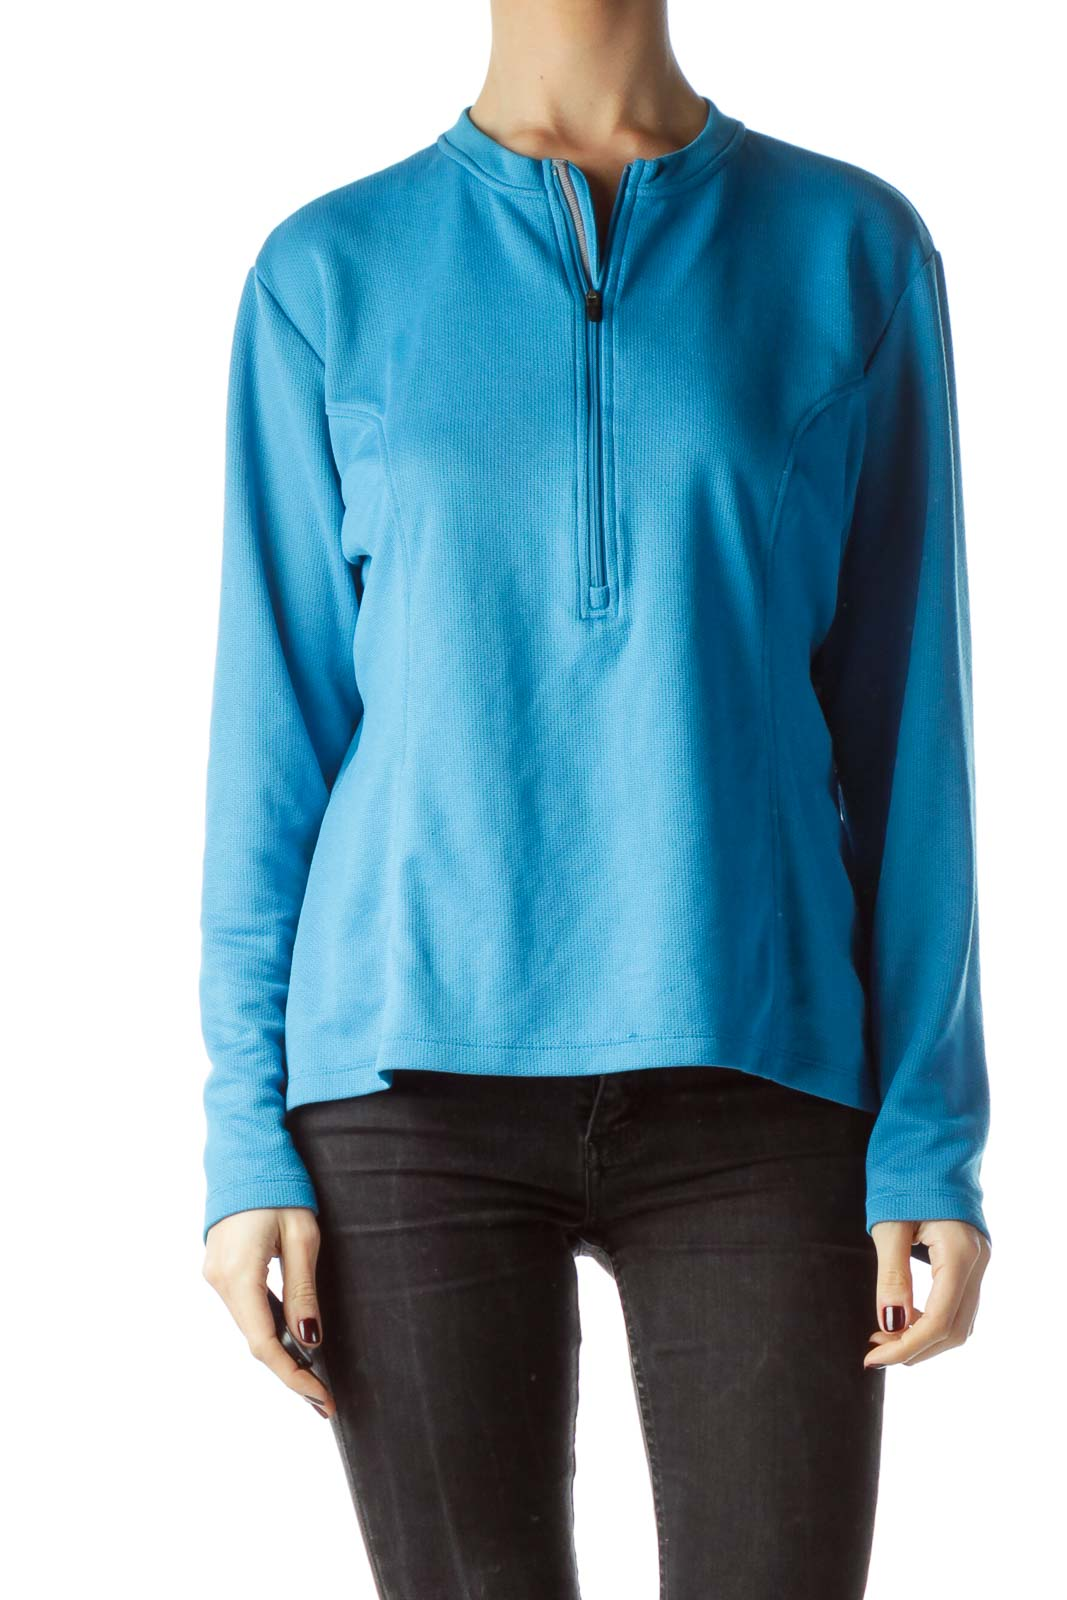 Teal Blue Front Zipper Stretchy Sports Jacket Front